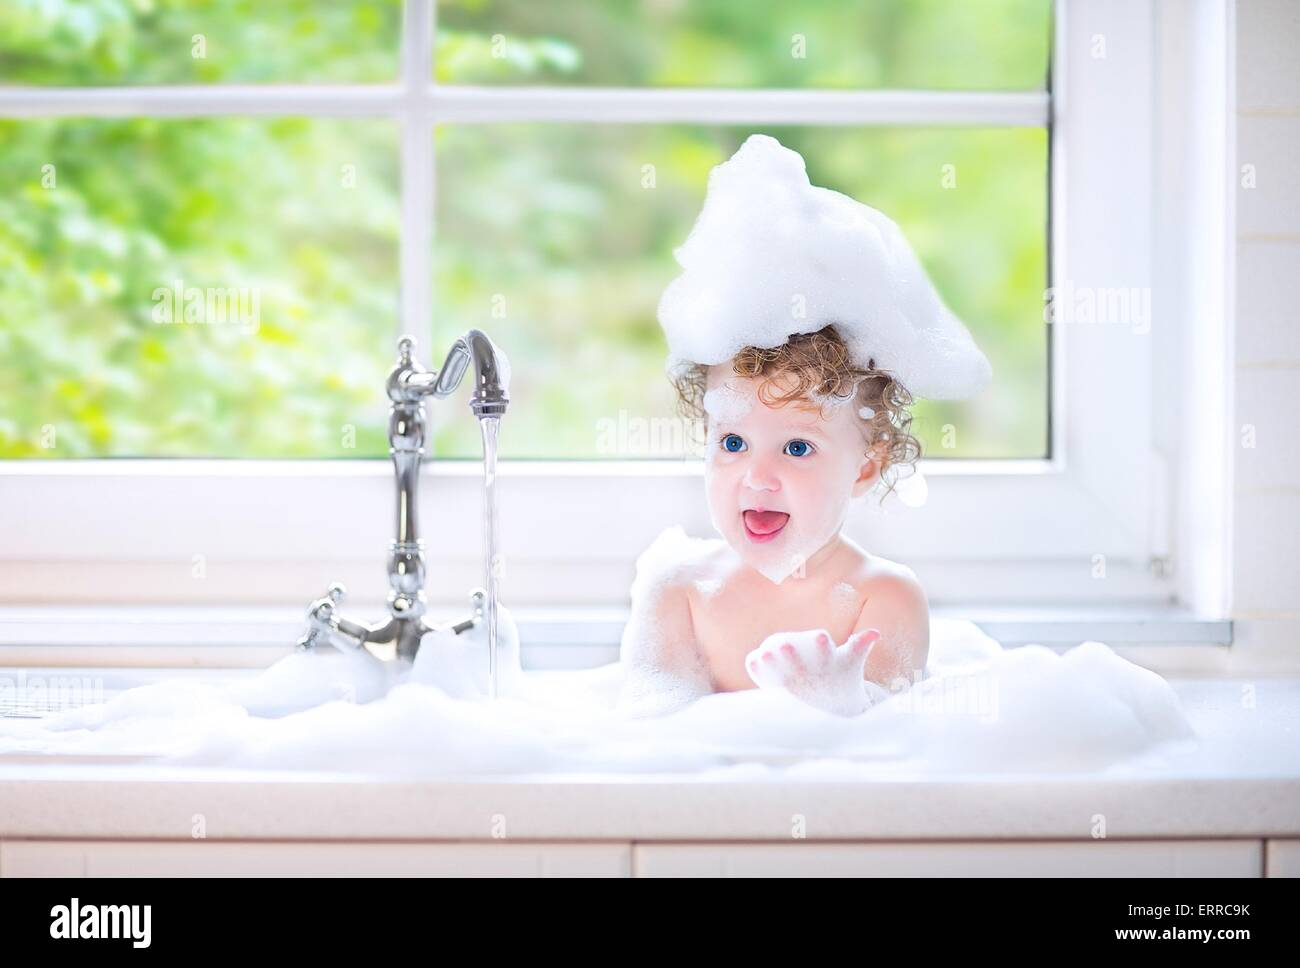 Funny little baby girl with wet curly hair taking bath in a kitchen ...